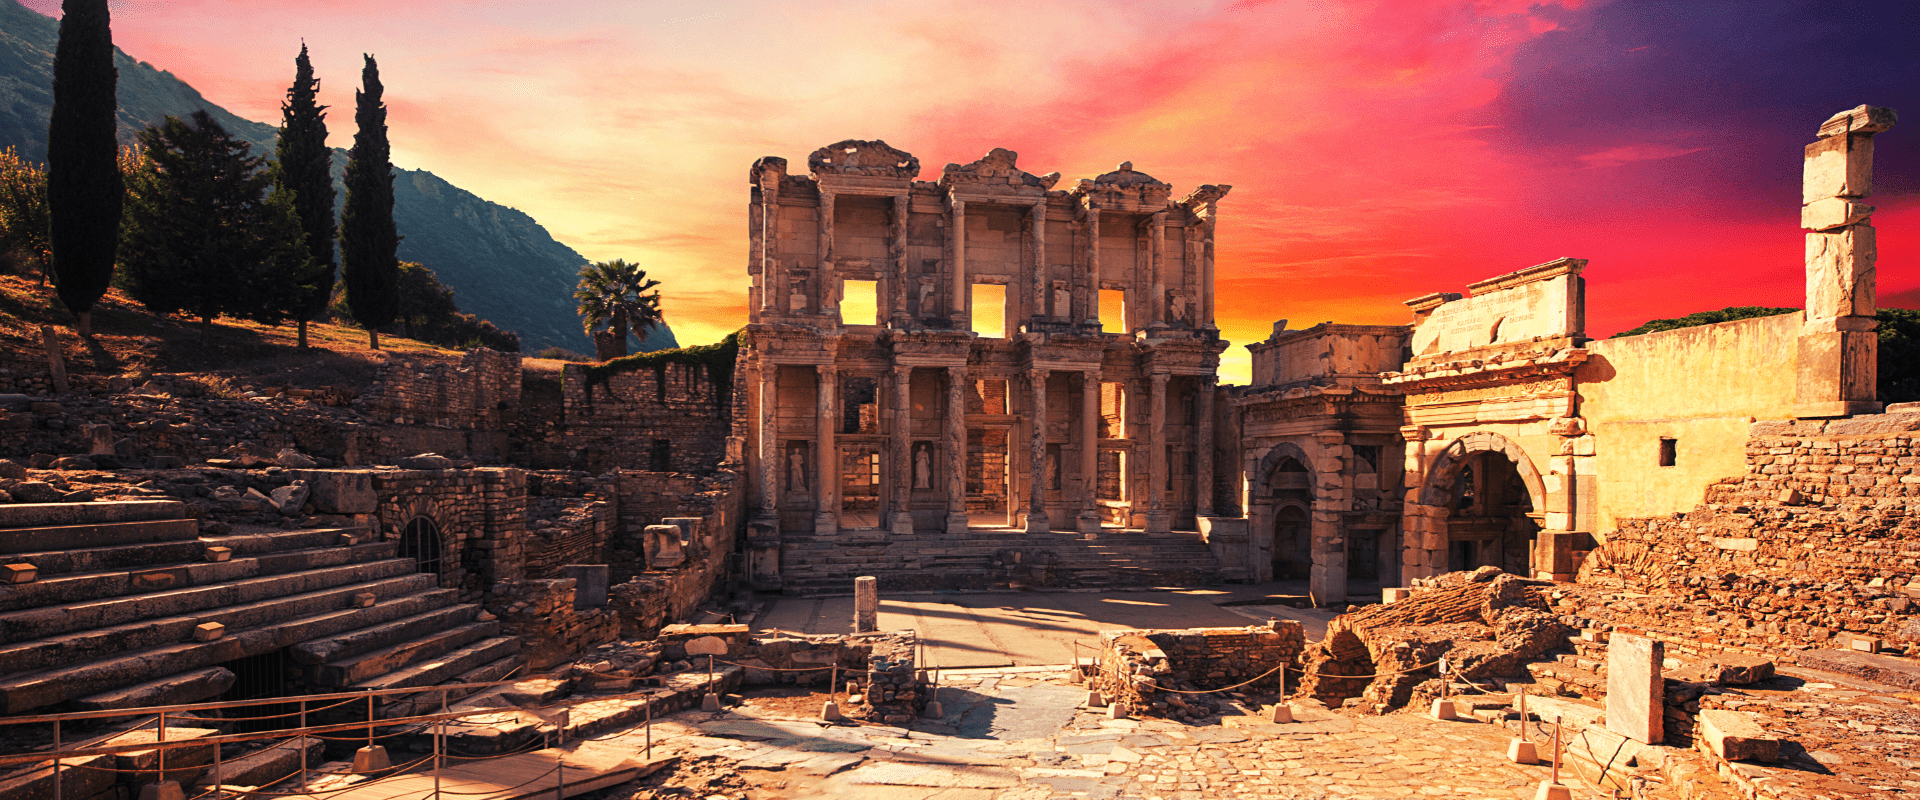 Best of Greece Egypt Tour with Cruise, Turkey